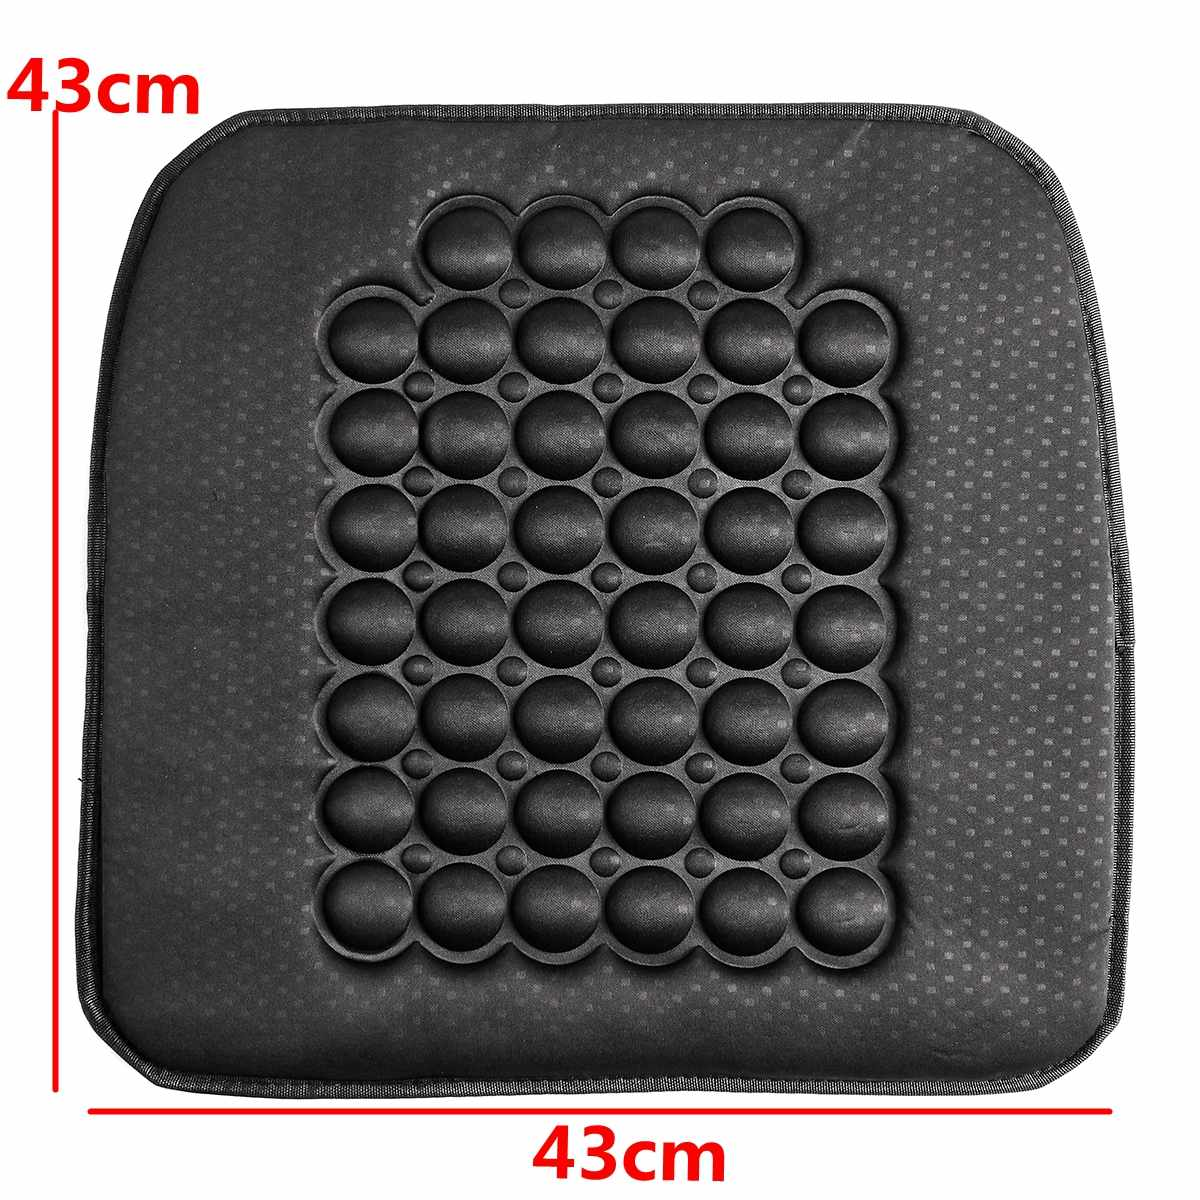 1 Pcs 12V Fasr Heated Black Car Heated Seat Cushion Cover Auto Heat Heater Warmer Pad Winter Automobiles Seat Covers Accessories